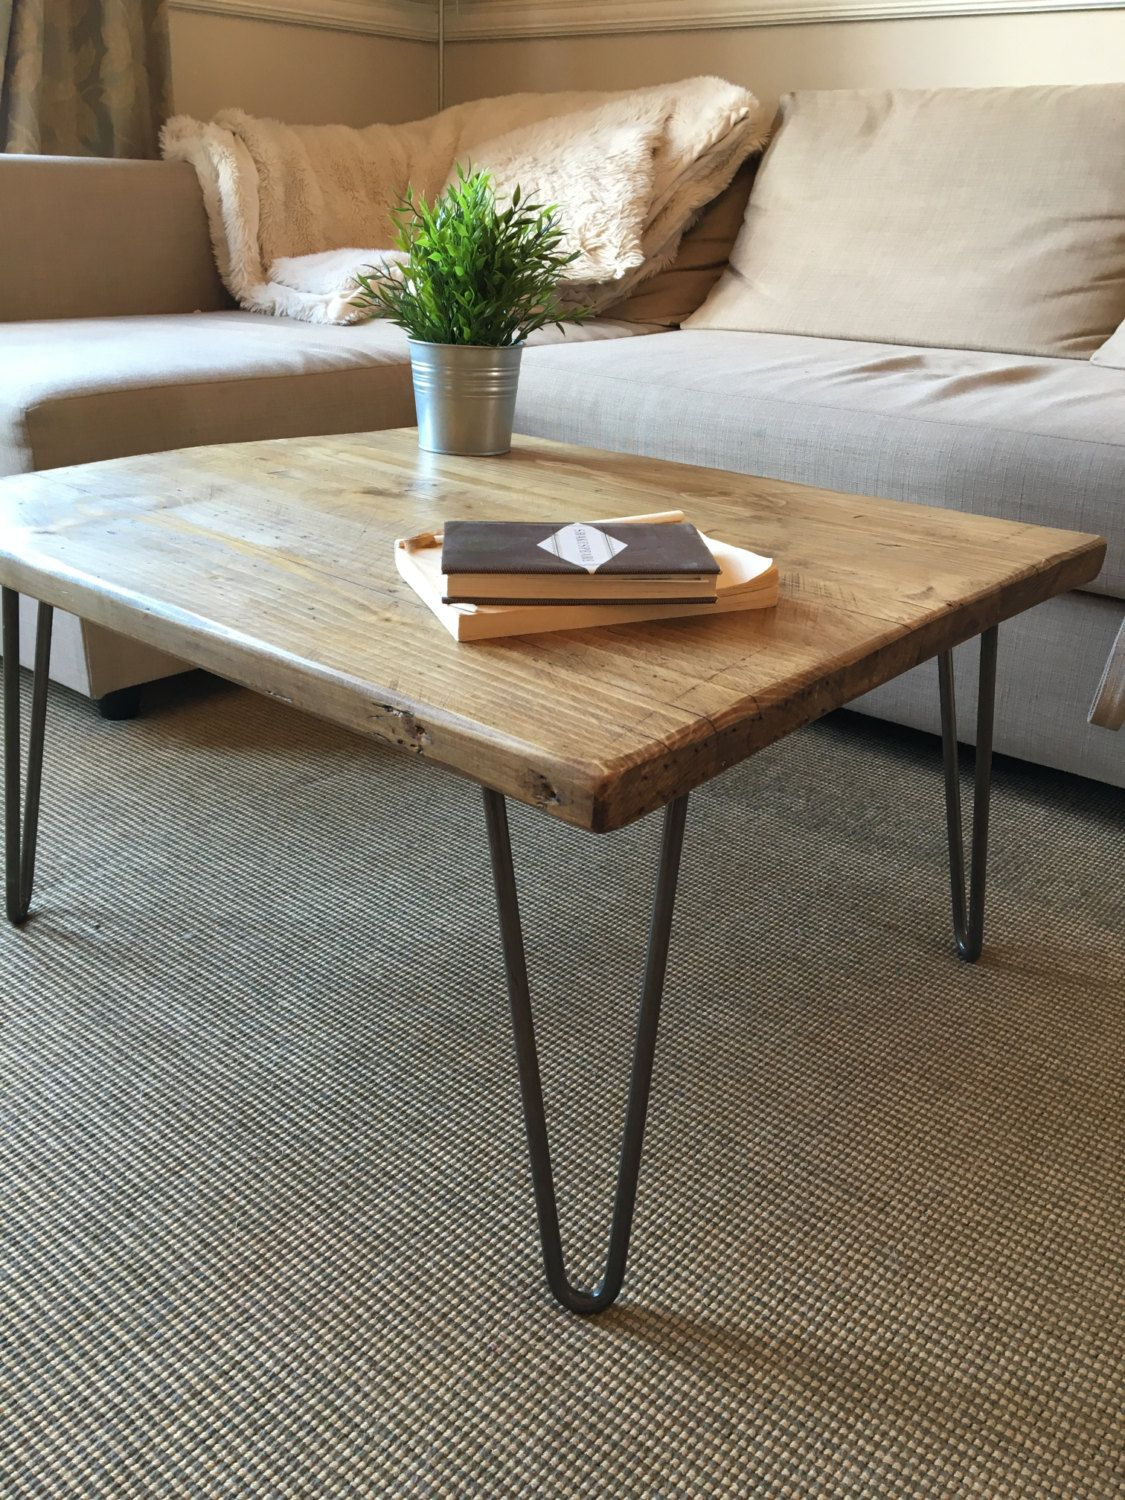 Hairpin Legs Couchtisch Rustic Wooden Coffee Table Made From Reclaimed Scaffold Boards & Steel Hairpin Legs - Urban Industrial | Rustic Wooden Coffee Table, Wooden Coffee Table Designs, Wooden Table Diy